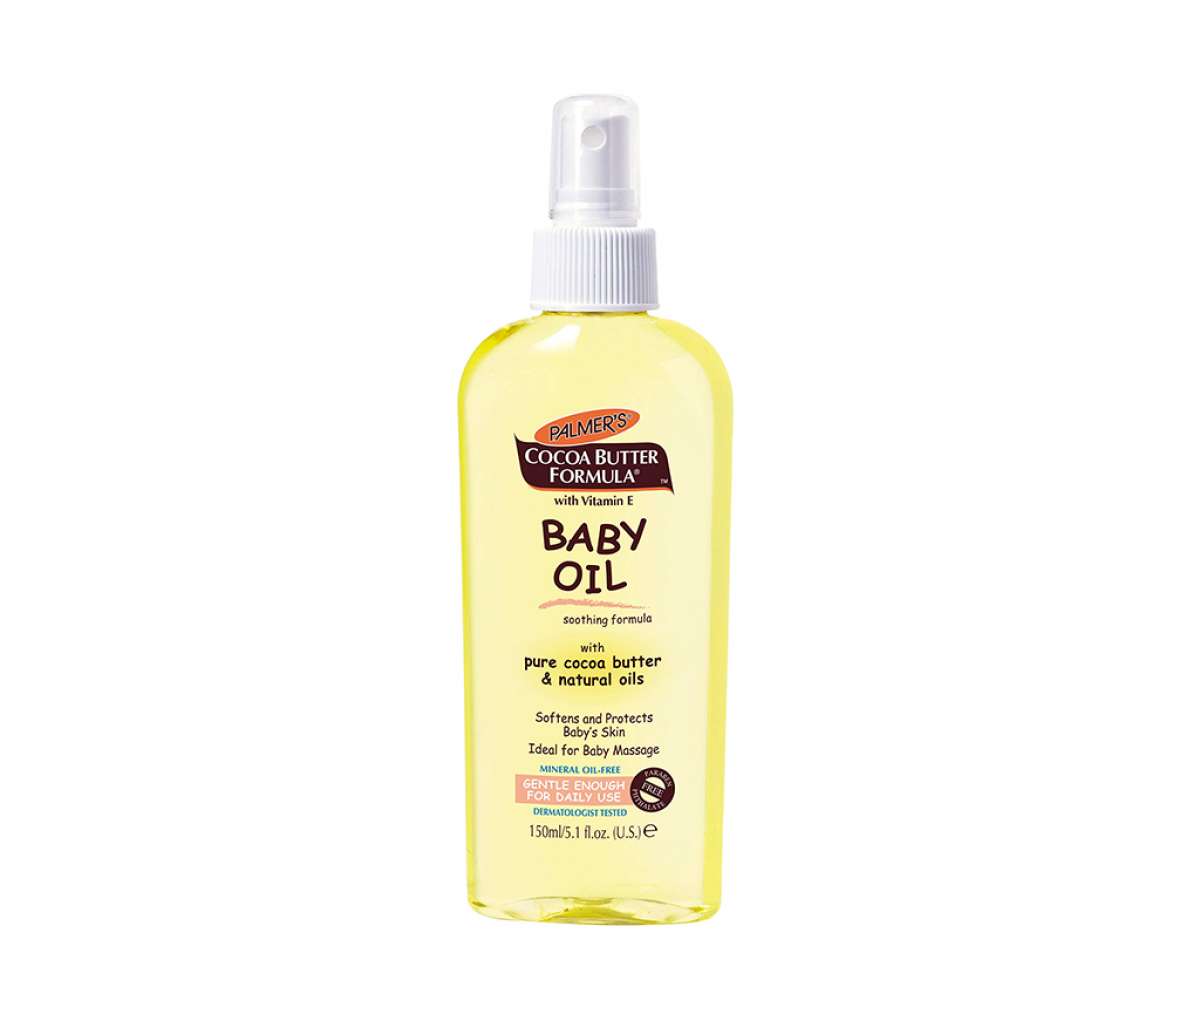 Palmers cocoa butter formula baby oil 150ml